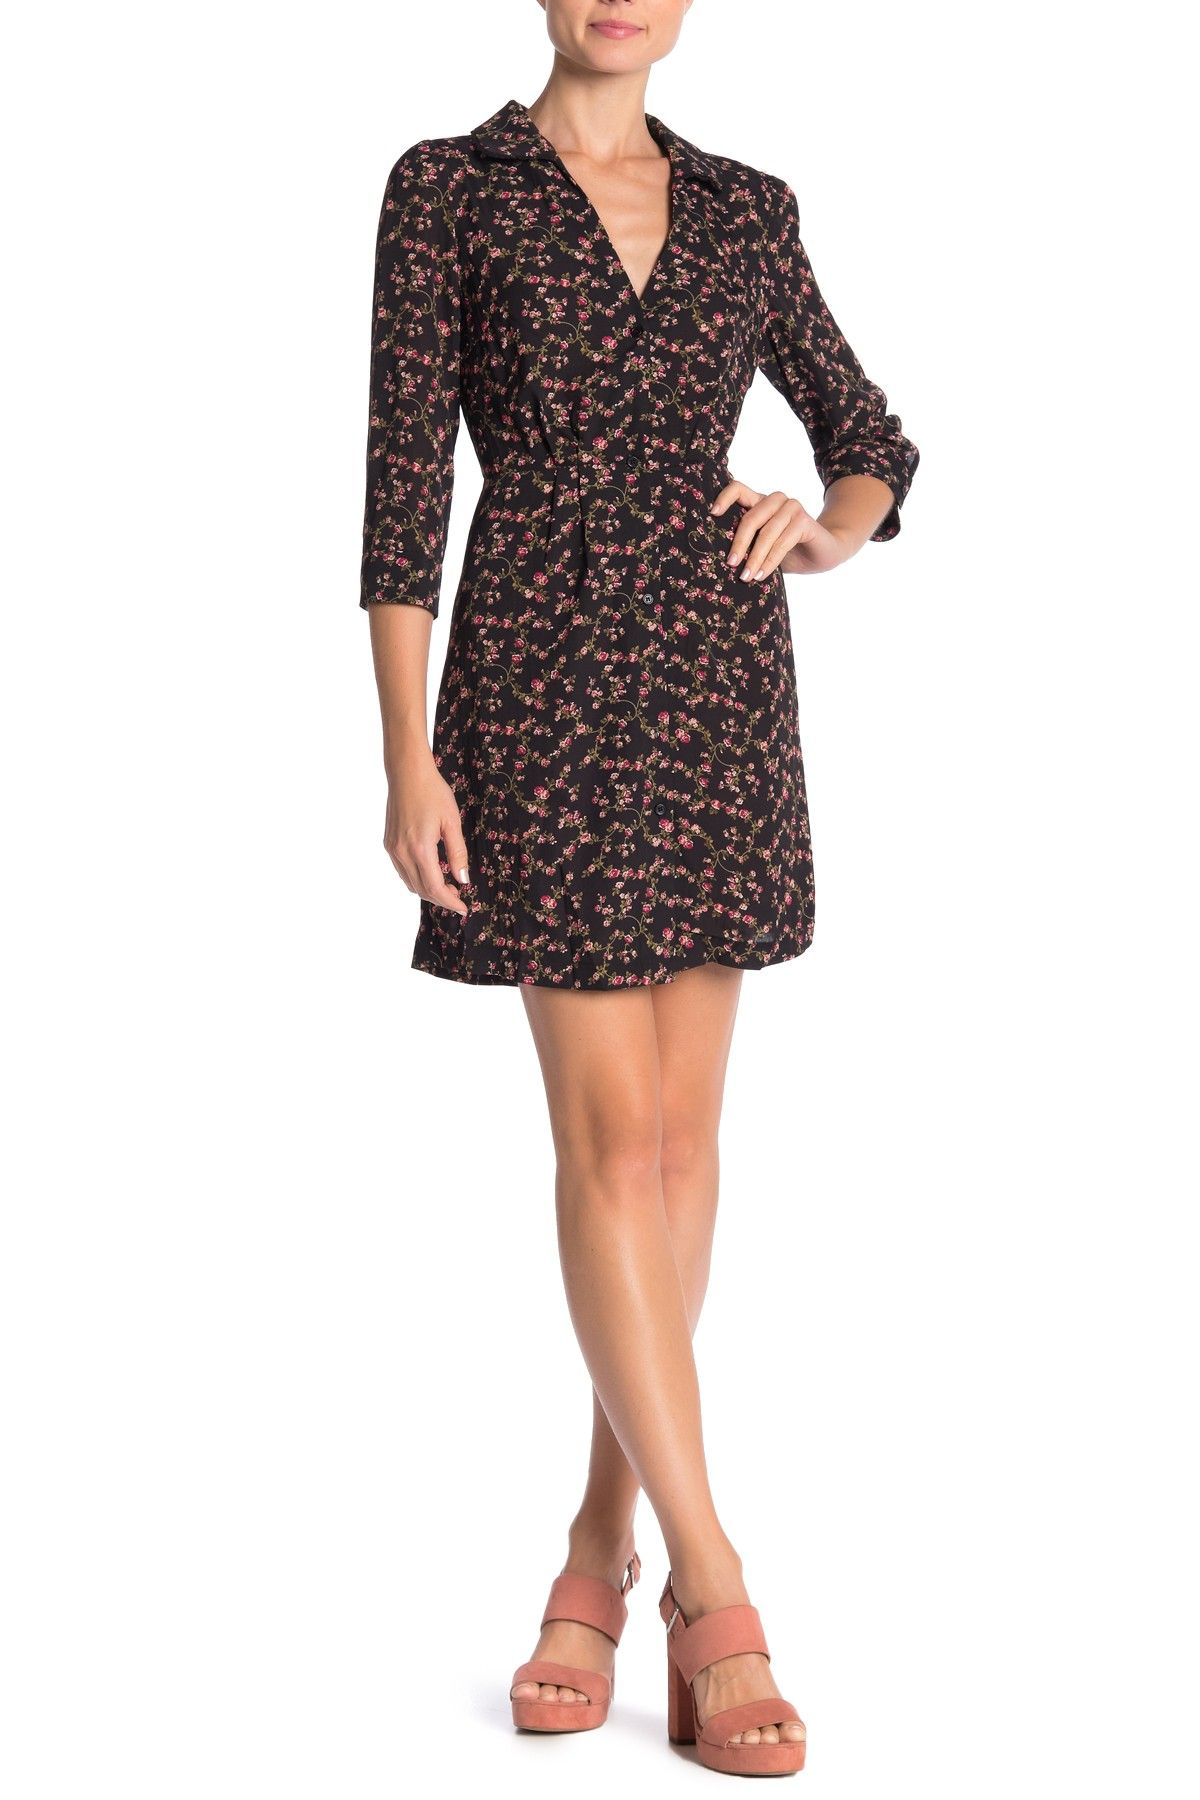 renamed apparel Geneva Floral Mini Dress Mini dress